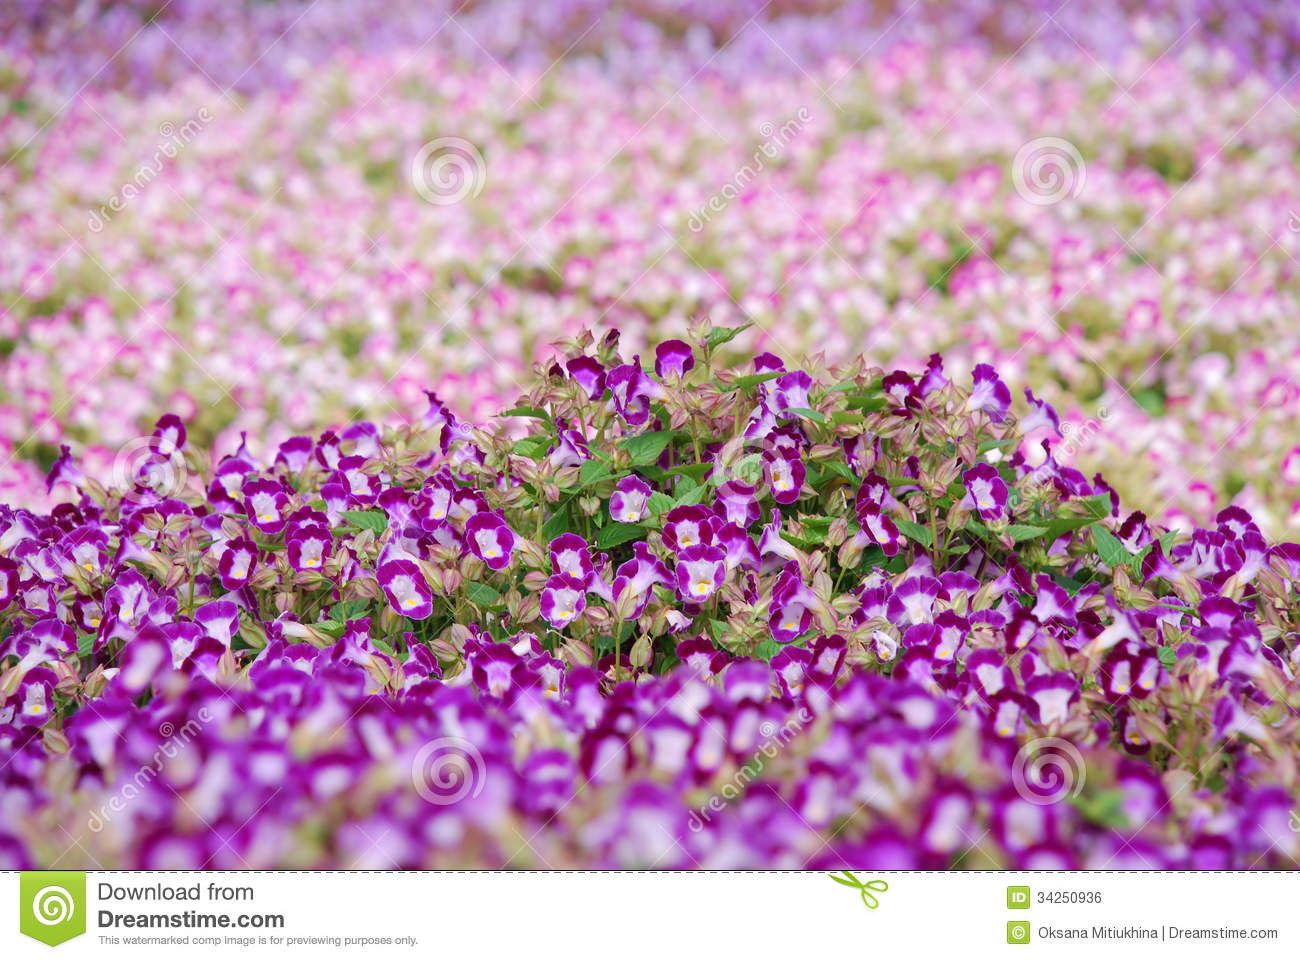 Blooming Dense Flowerbed Of Small Purple Flowers Stock